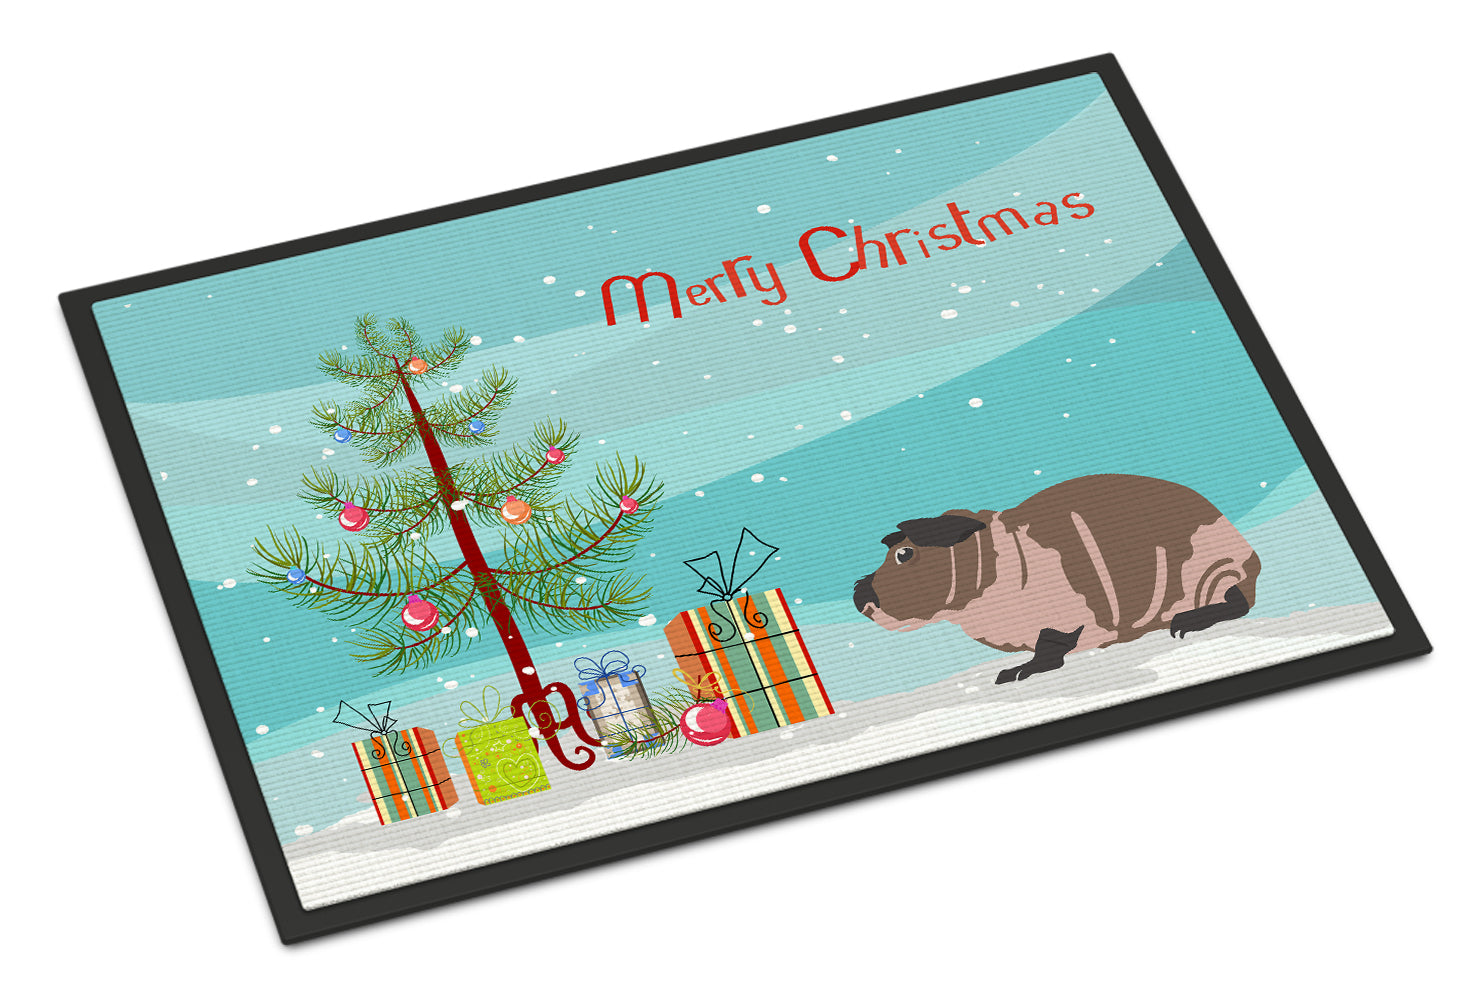 Skinny Guinea Pig Merry Christmas Indoor or Outdoor Mat 18x27 CK4447MAT by Caroline's Treasures